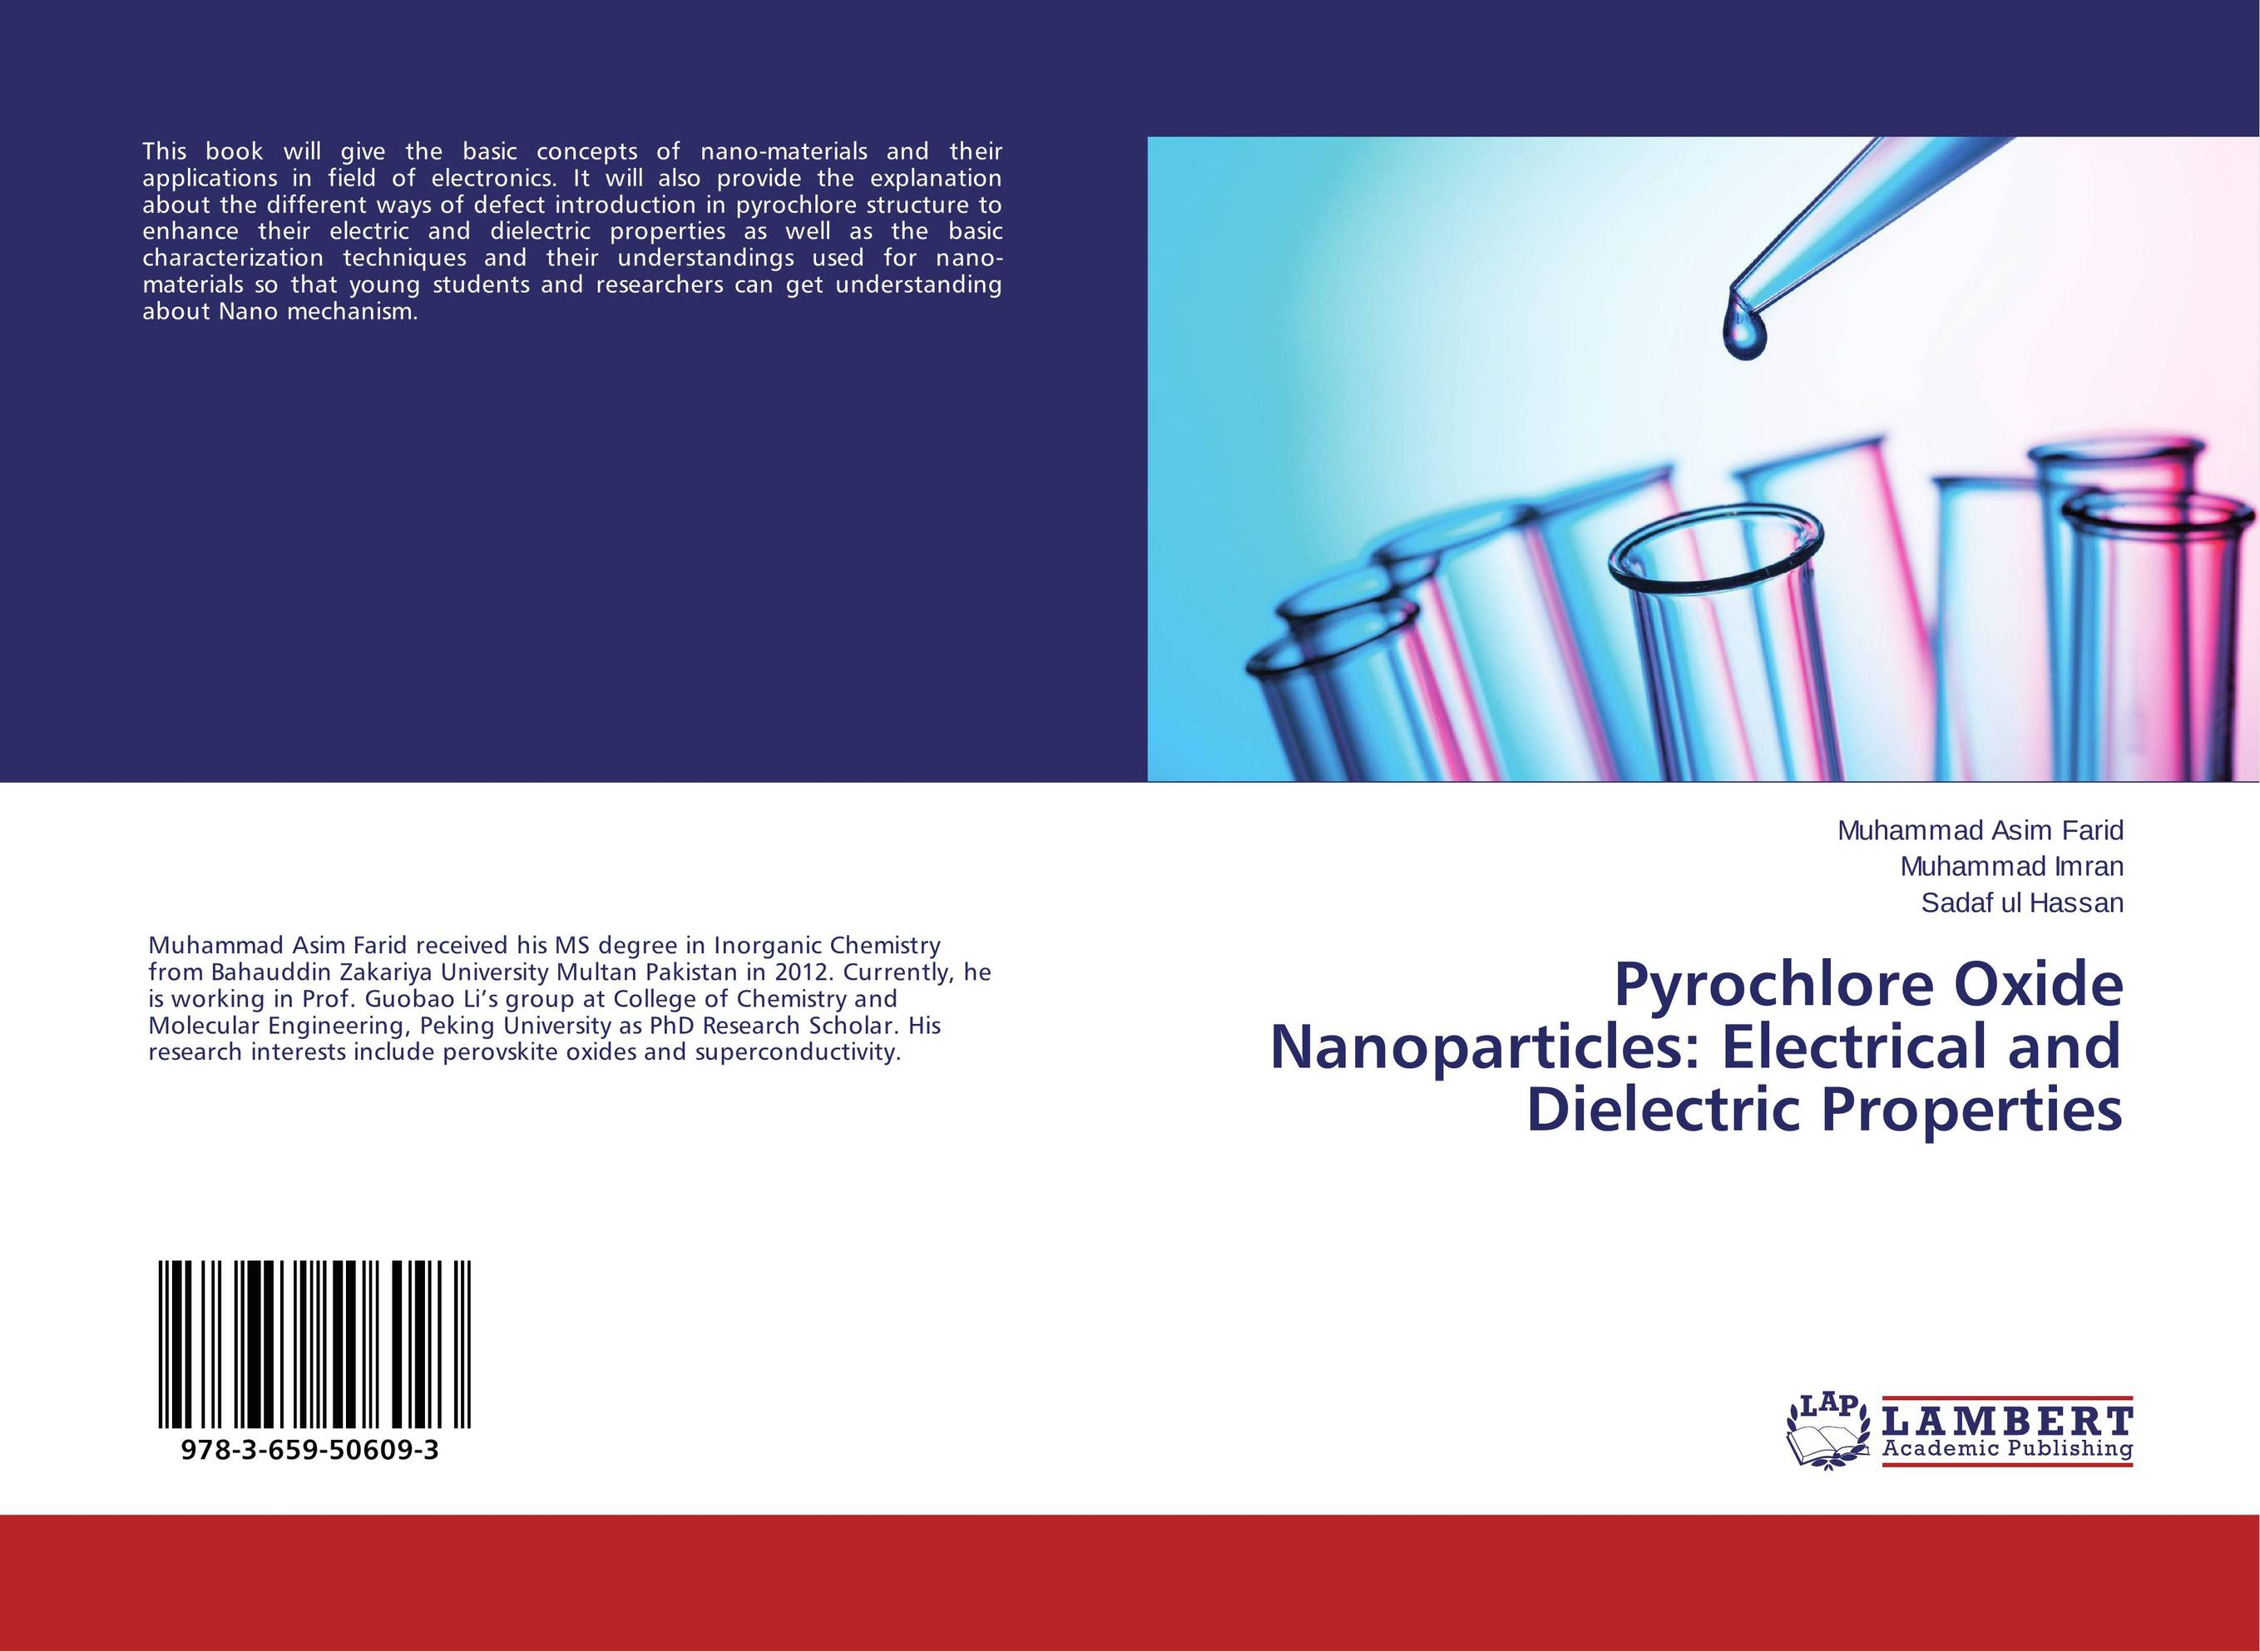 Pyrochlore Oxide Nanoparticles: Electrical and Dielectric Properties lifetimes of excitons in cuprous oxide